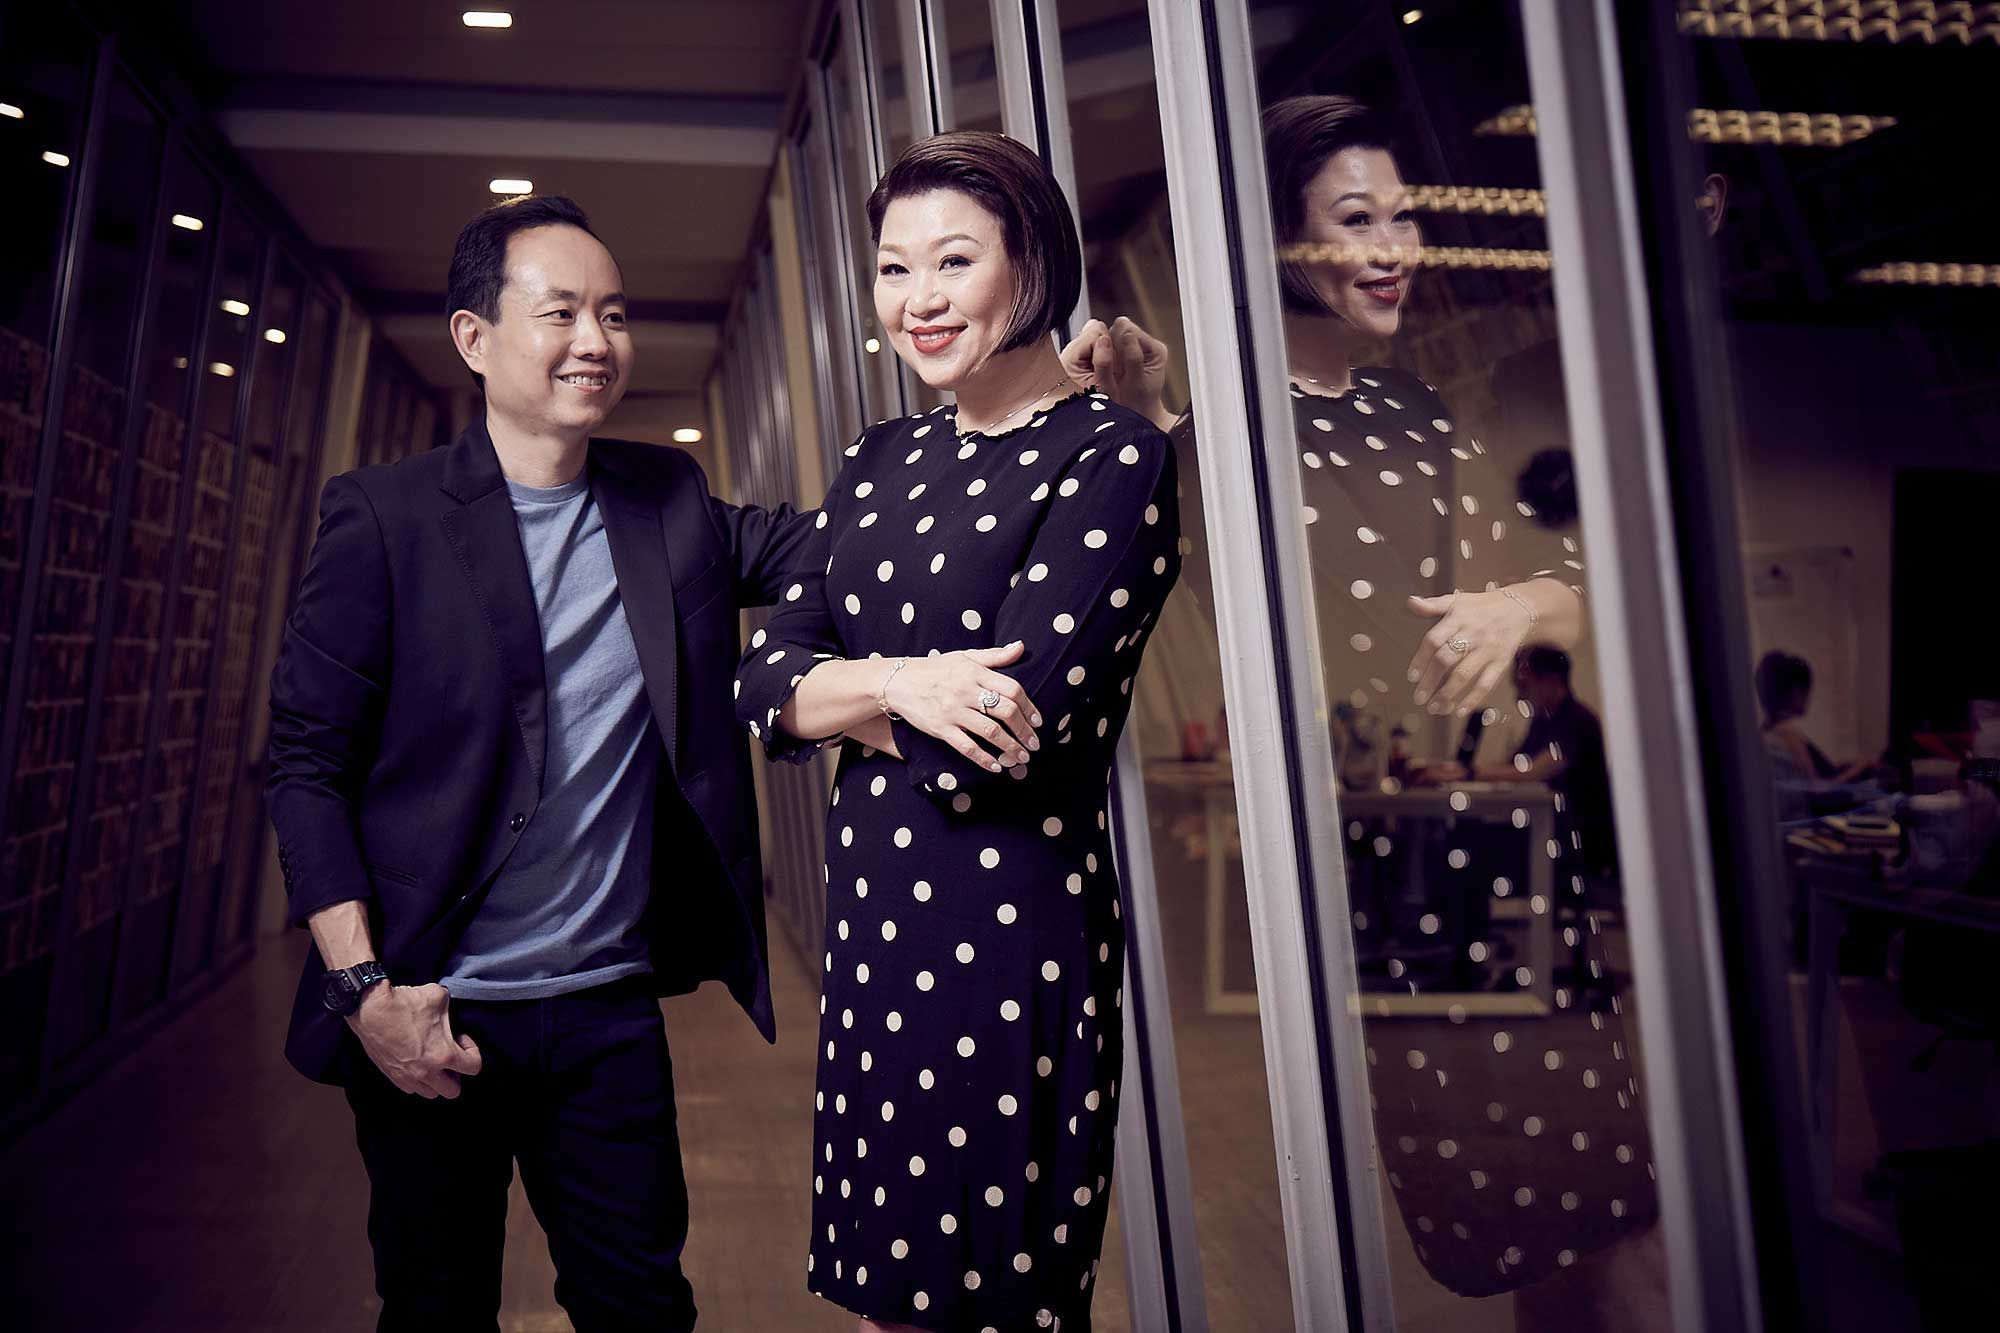 Jacqueline Ng and Andrew Yap of Book Xcess and the Big Bad Wolf Book Sale. Photo: CH Lei / Malaysia Tatler.